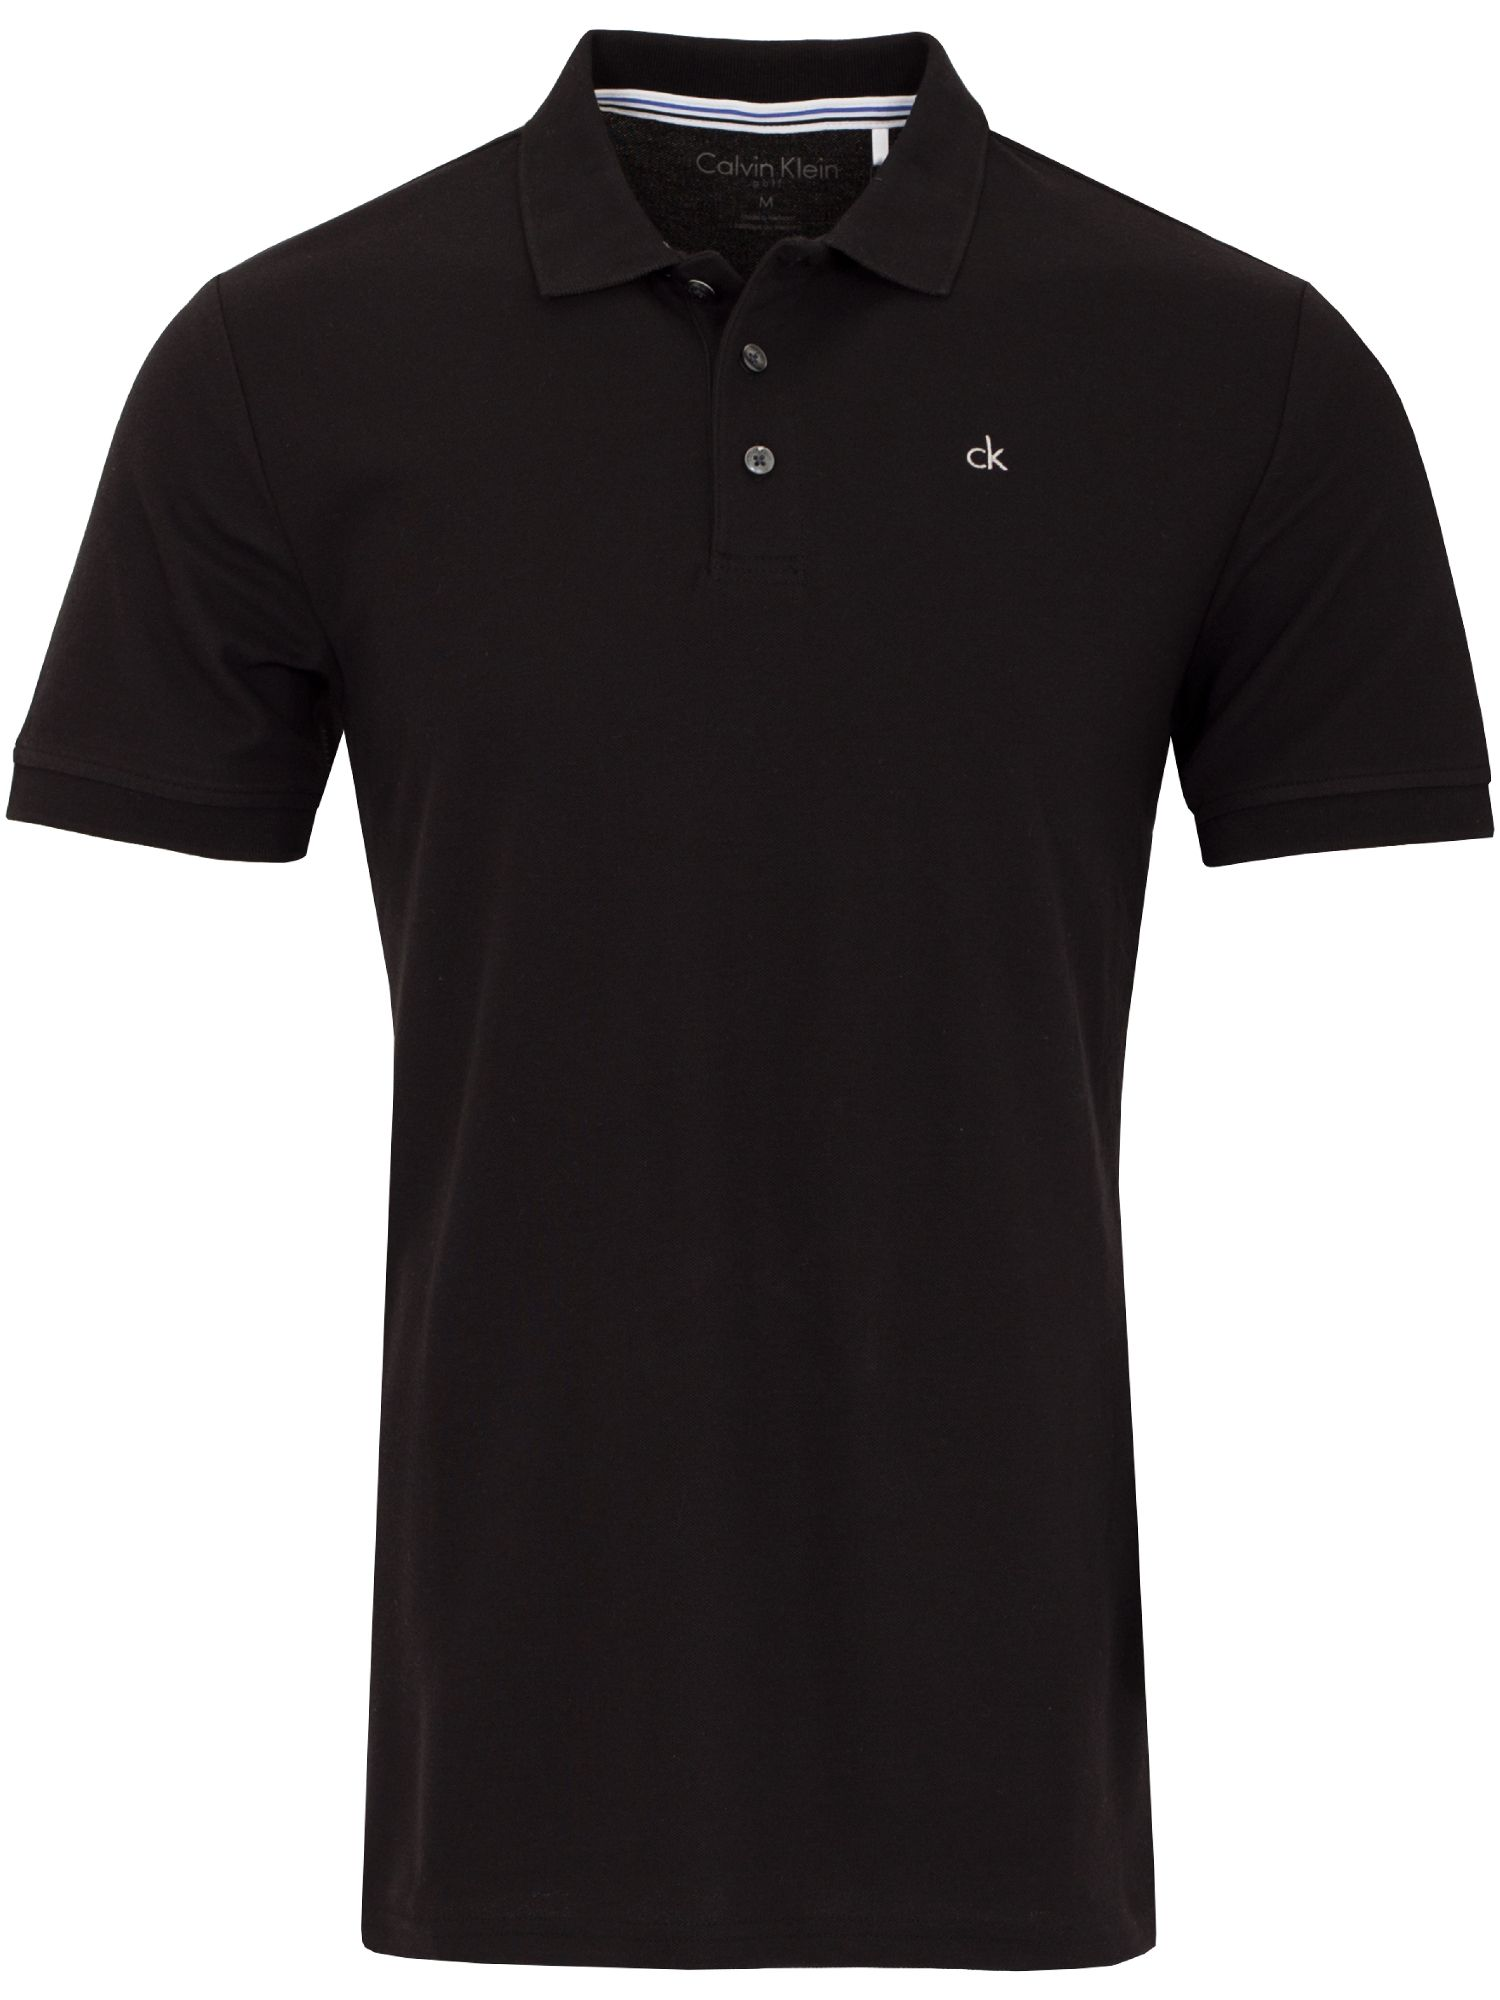 Men's Calvin Klein Golf Midtown Radical Cotton Polo, Black